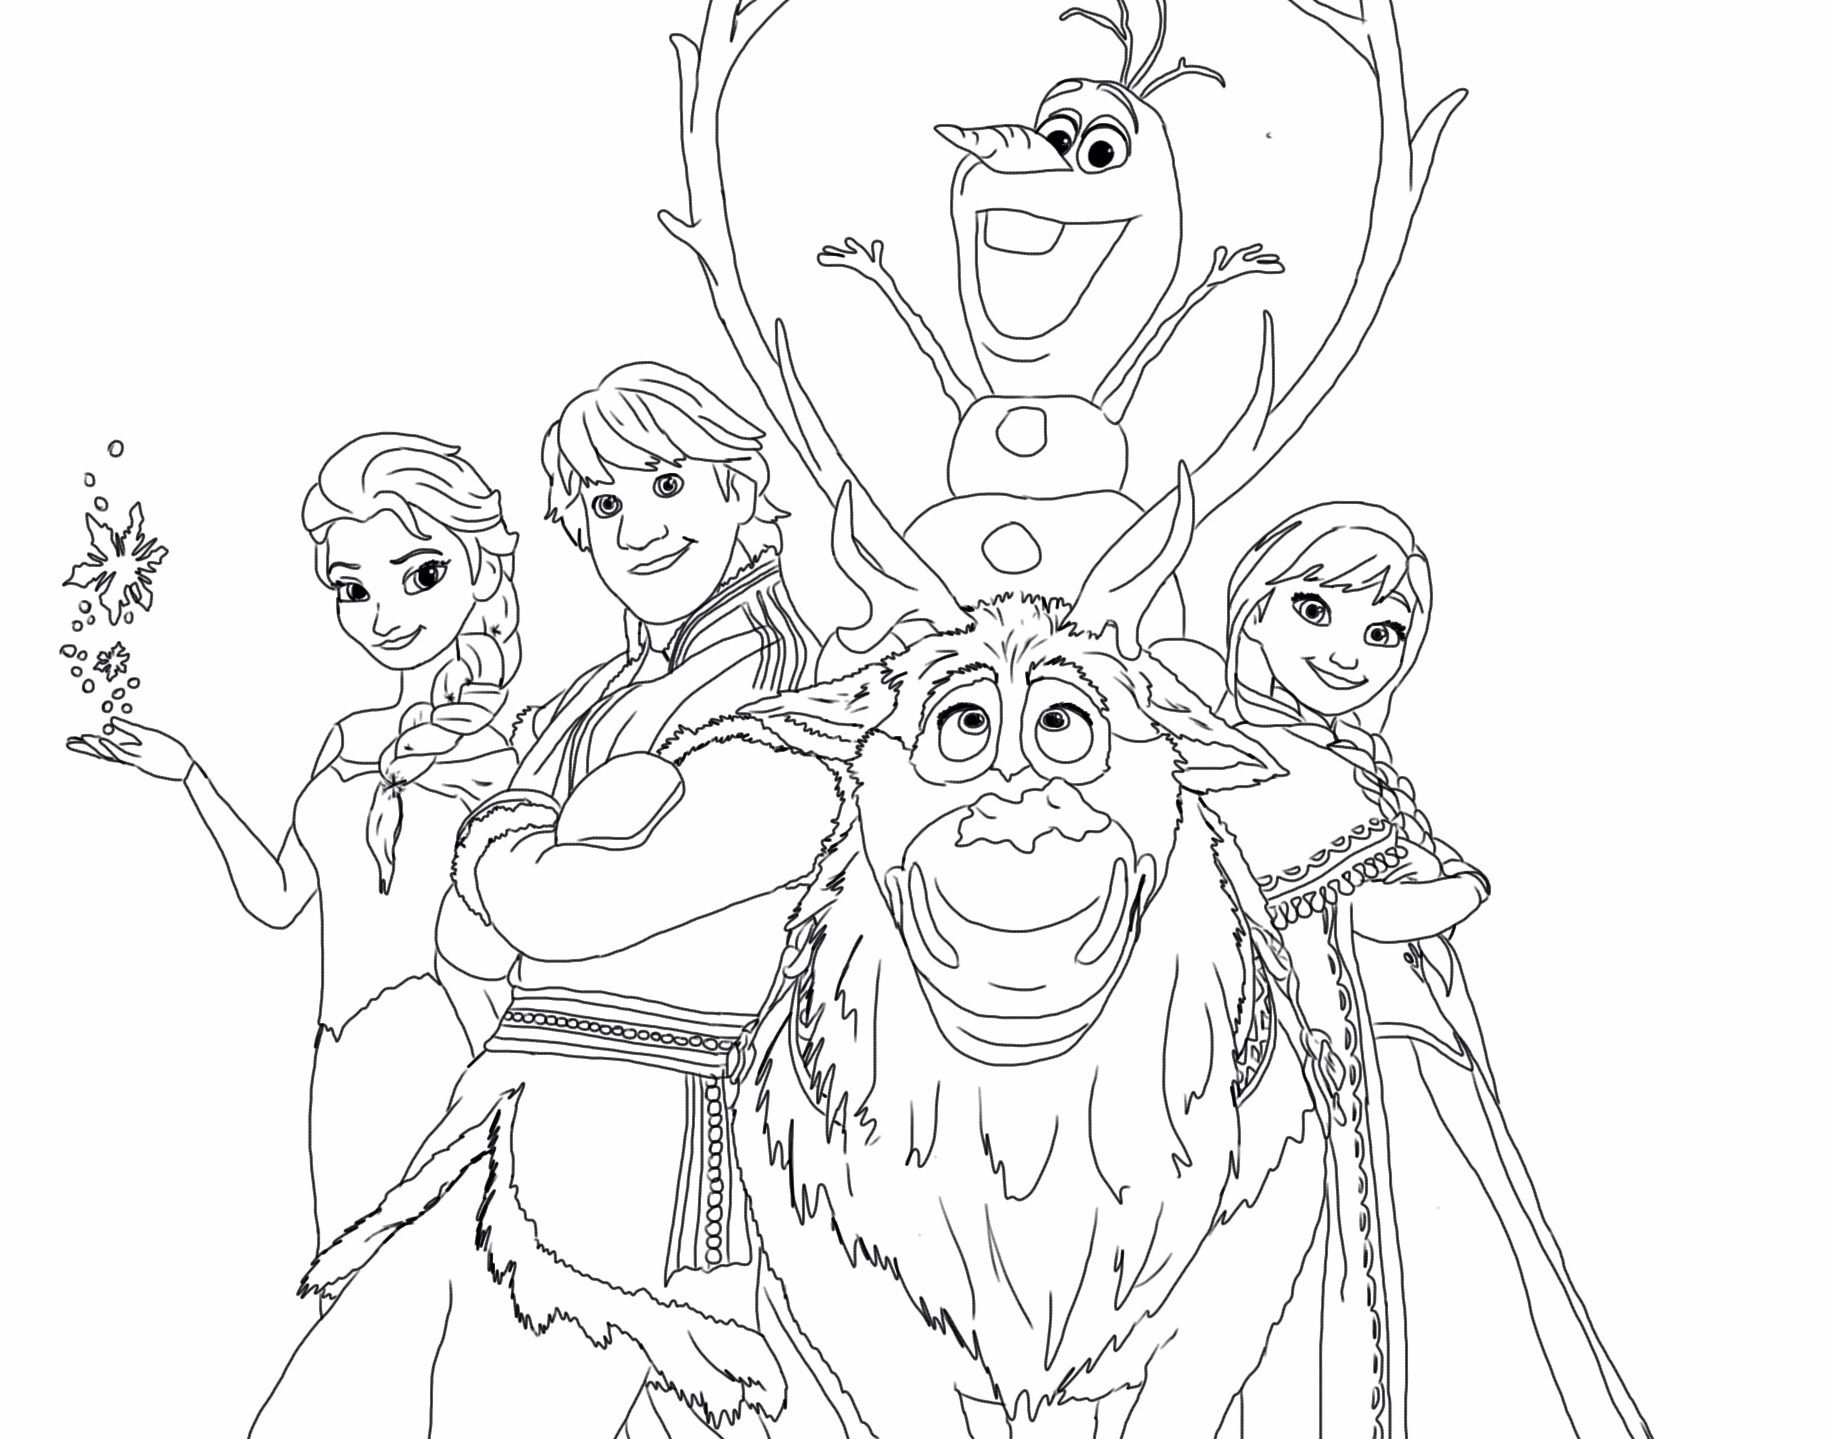 Free Coloring Pages For Elsa. Coloring page of Frozen characters  My Free Pages